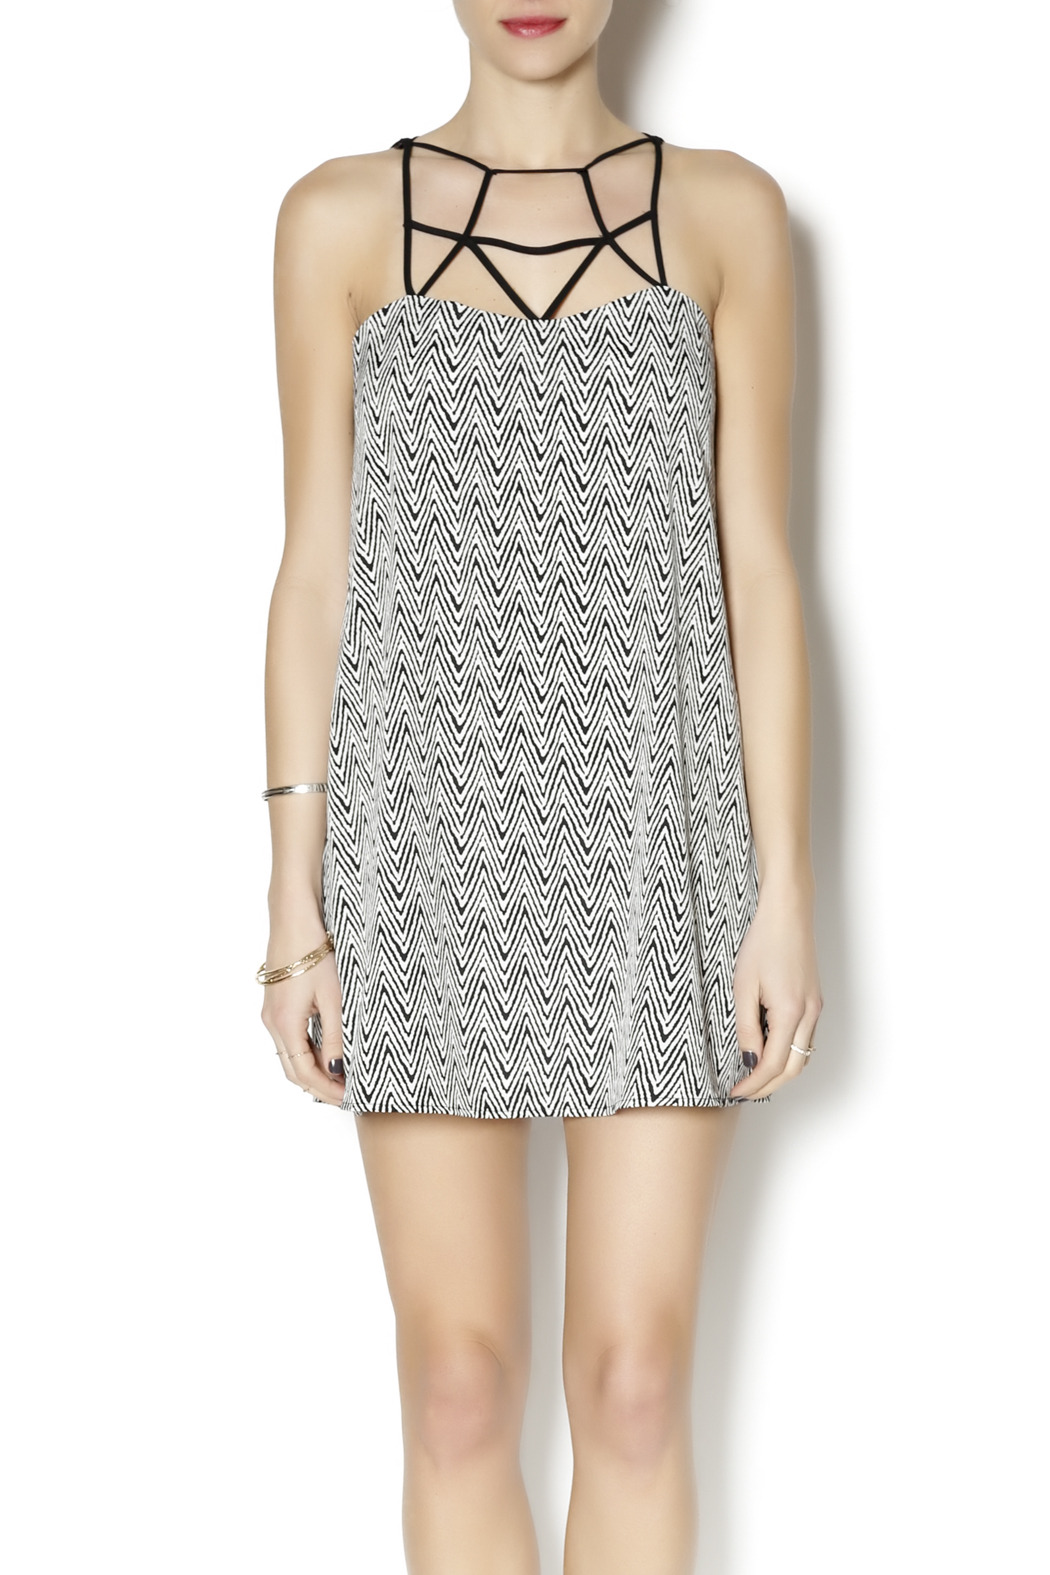 Coveted Clothing Zig Zag Dress - Front Cropped Image